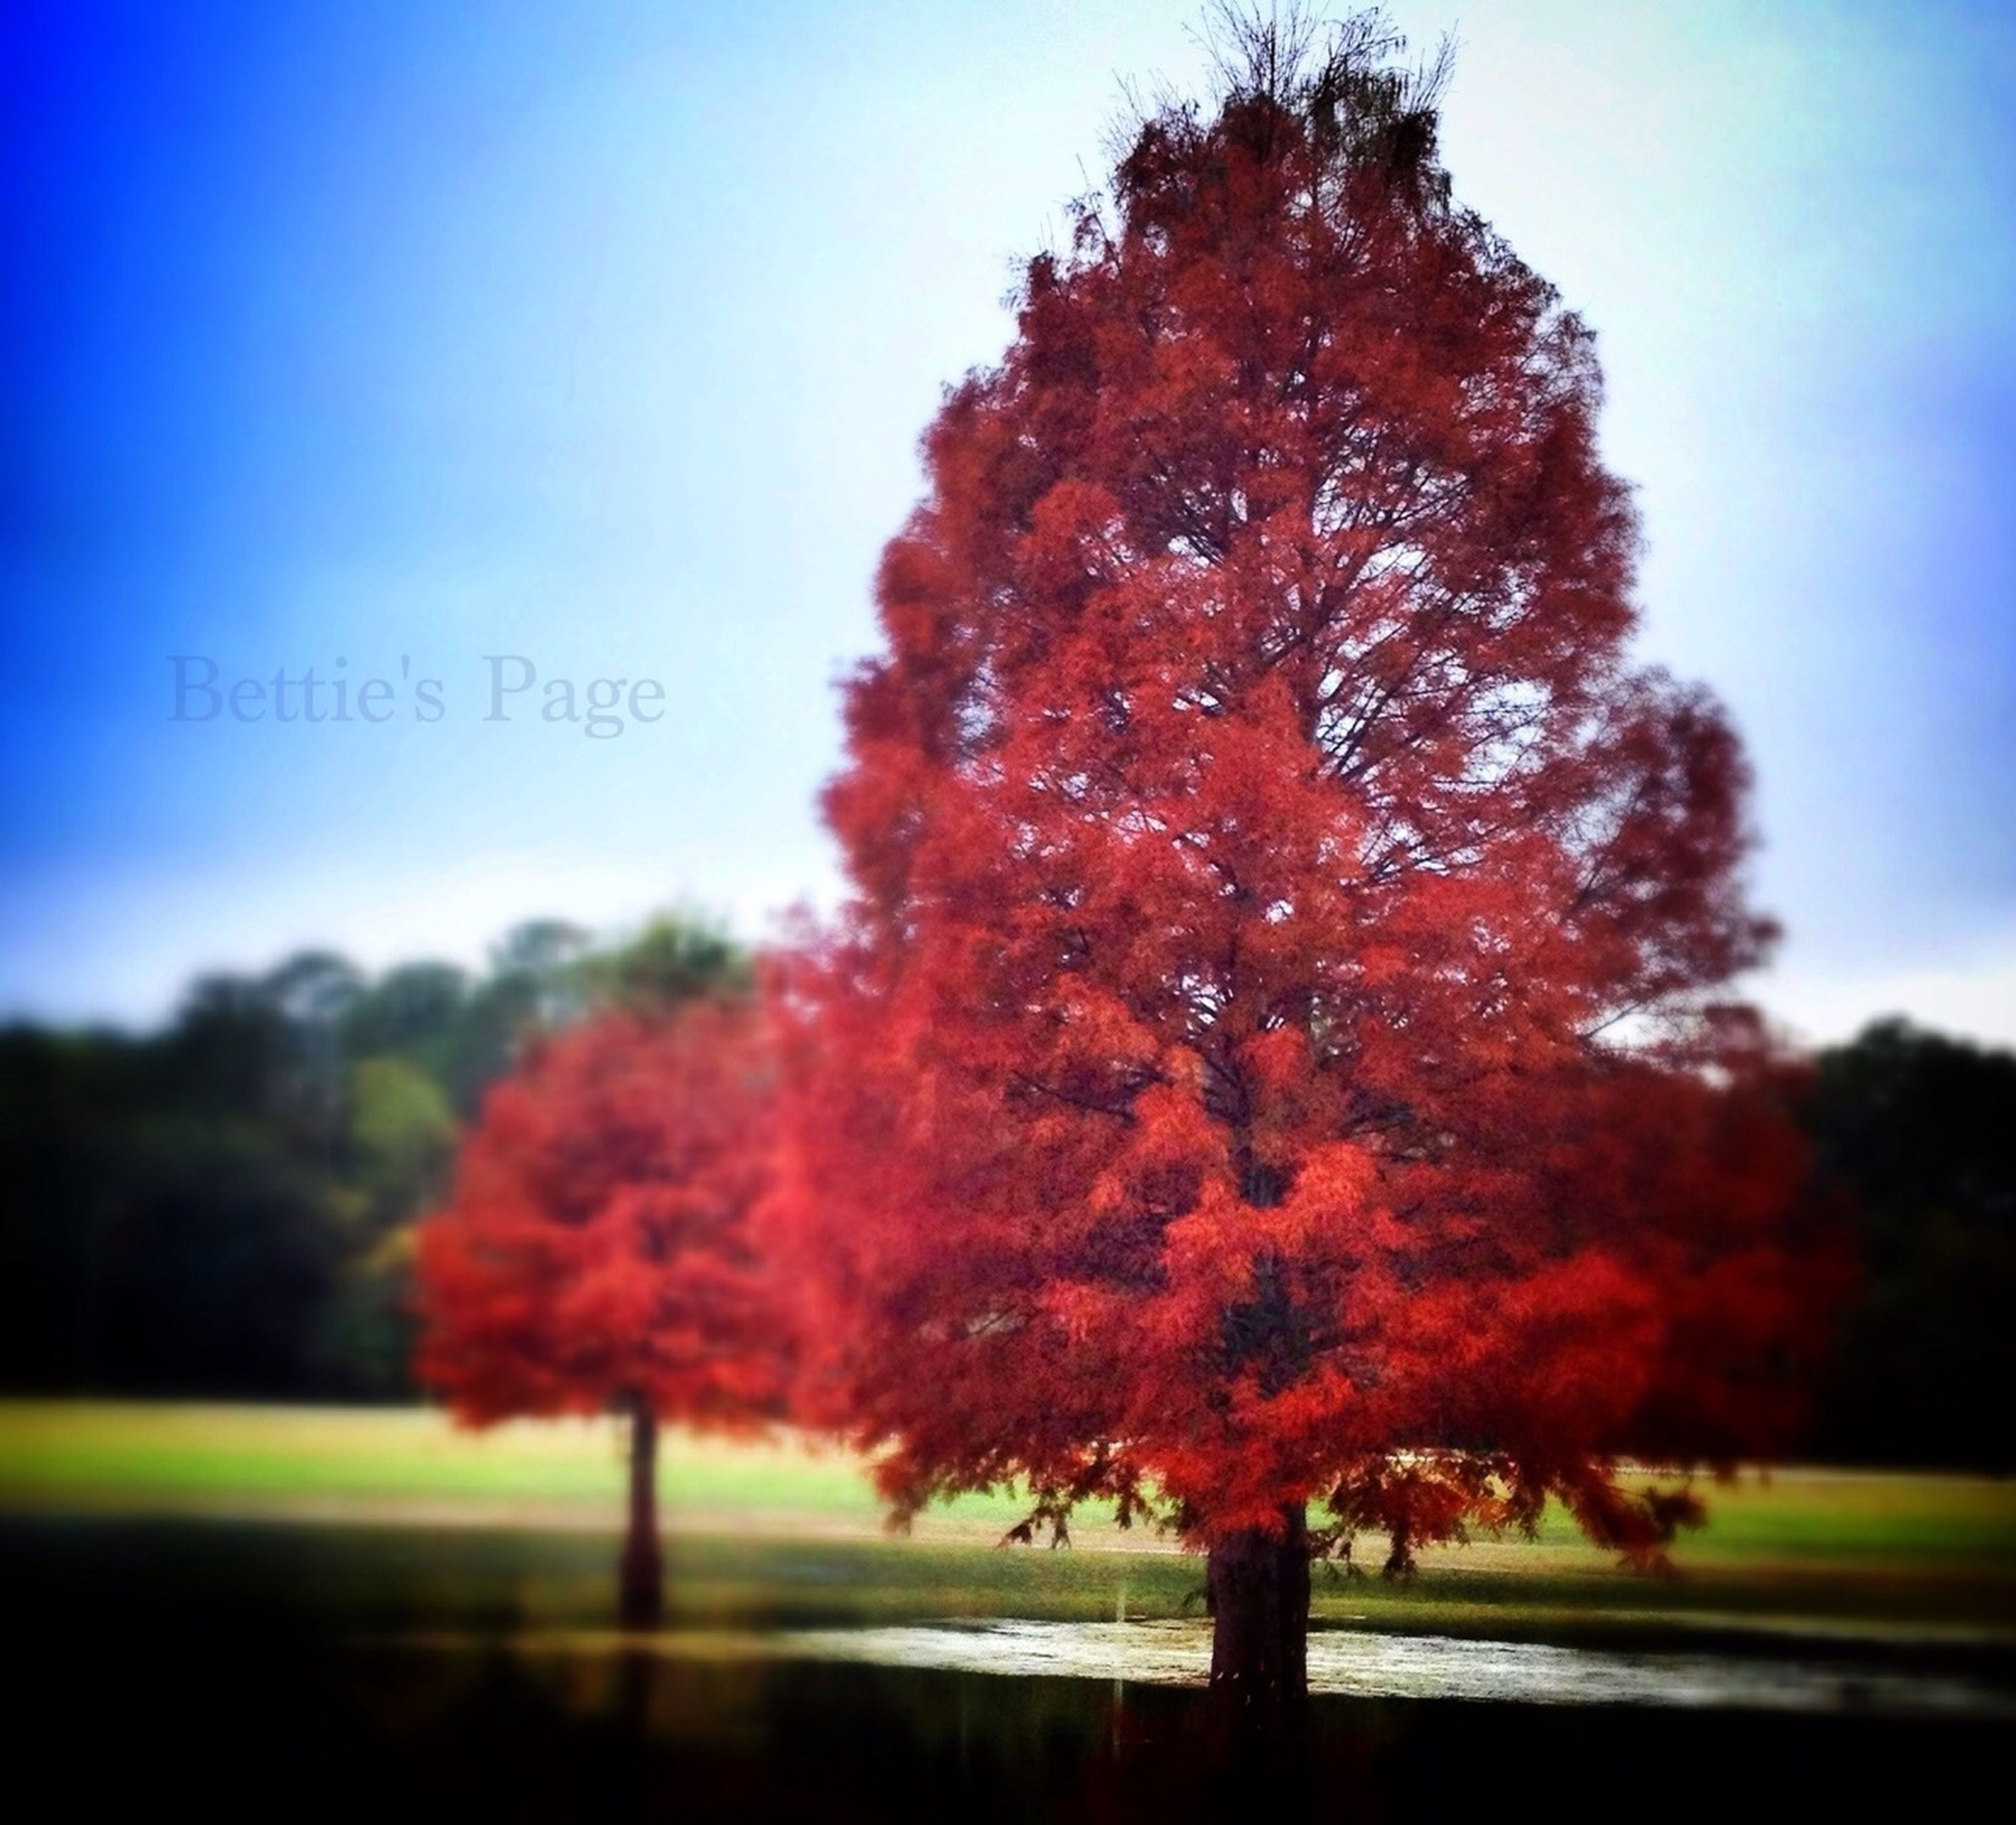 tree, autumn, change, season, tranquility, beauty in nature, nature, clear sky, sky, growth, tranquil scene, branch, scenics, focus on foreground, day, landscape, field, leaf, red, road